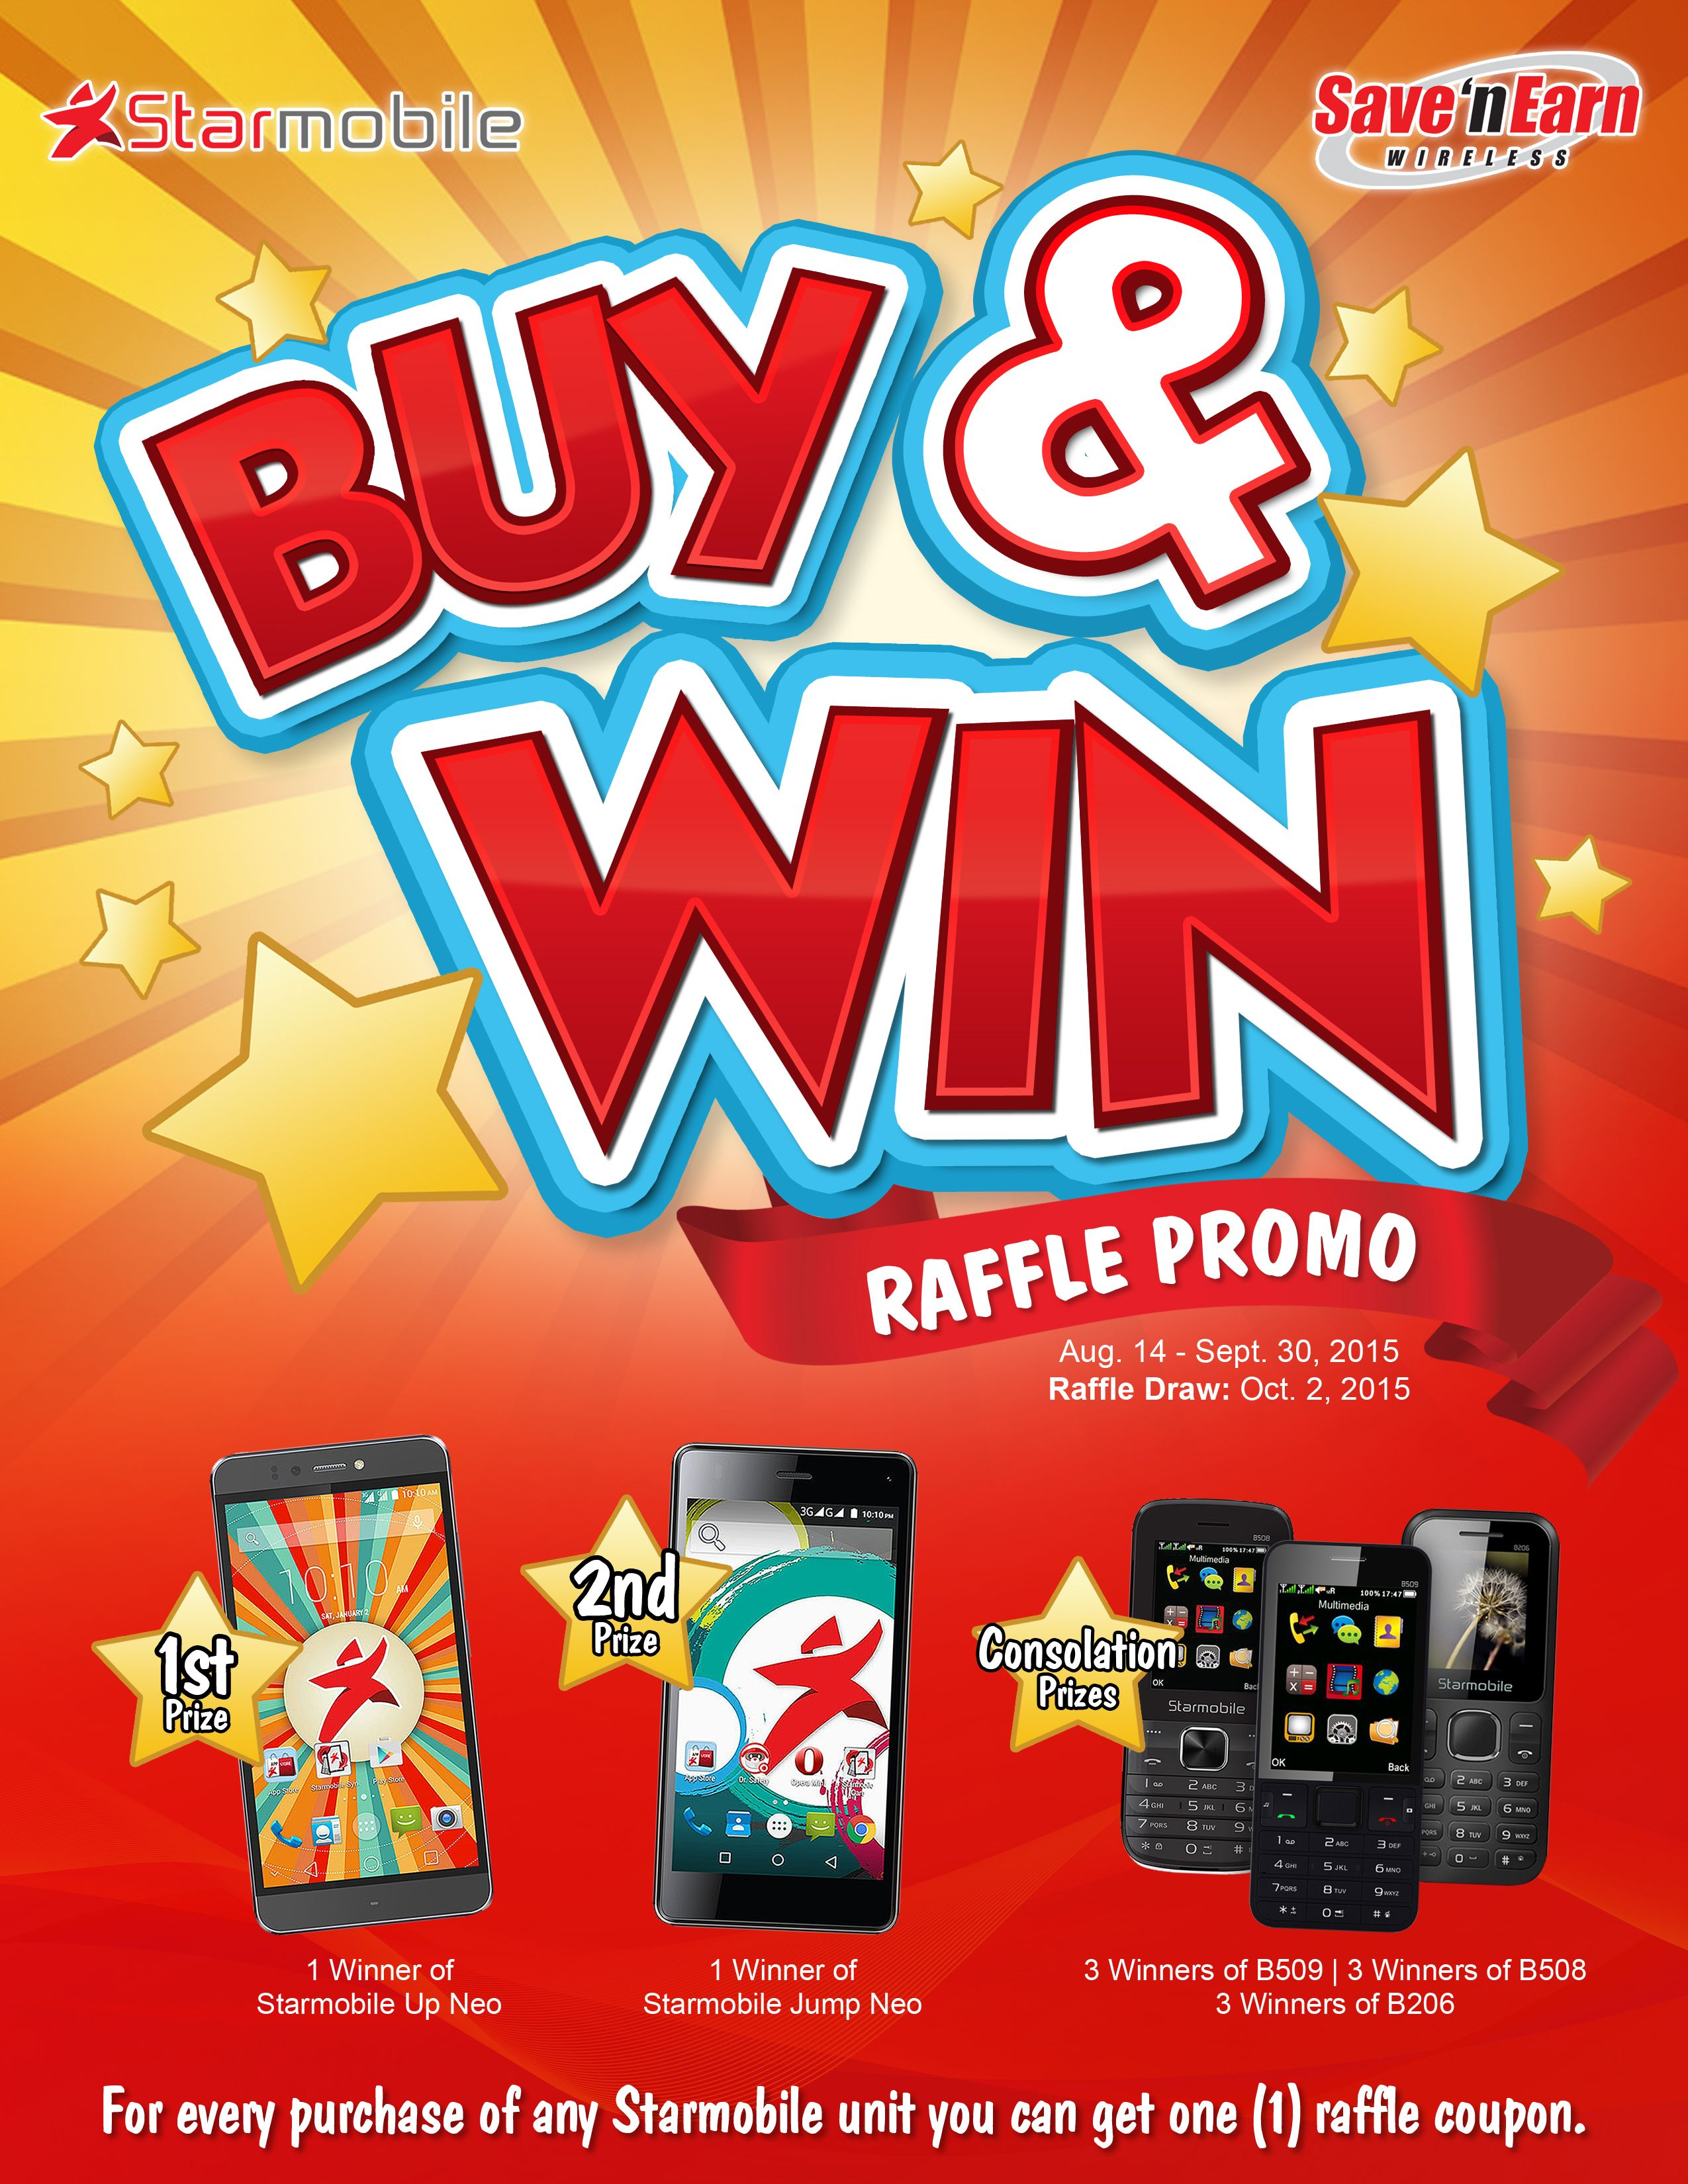 Purchase any Starmobile unit until September 30, 2015 and get a ...